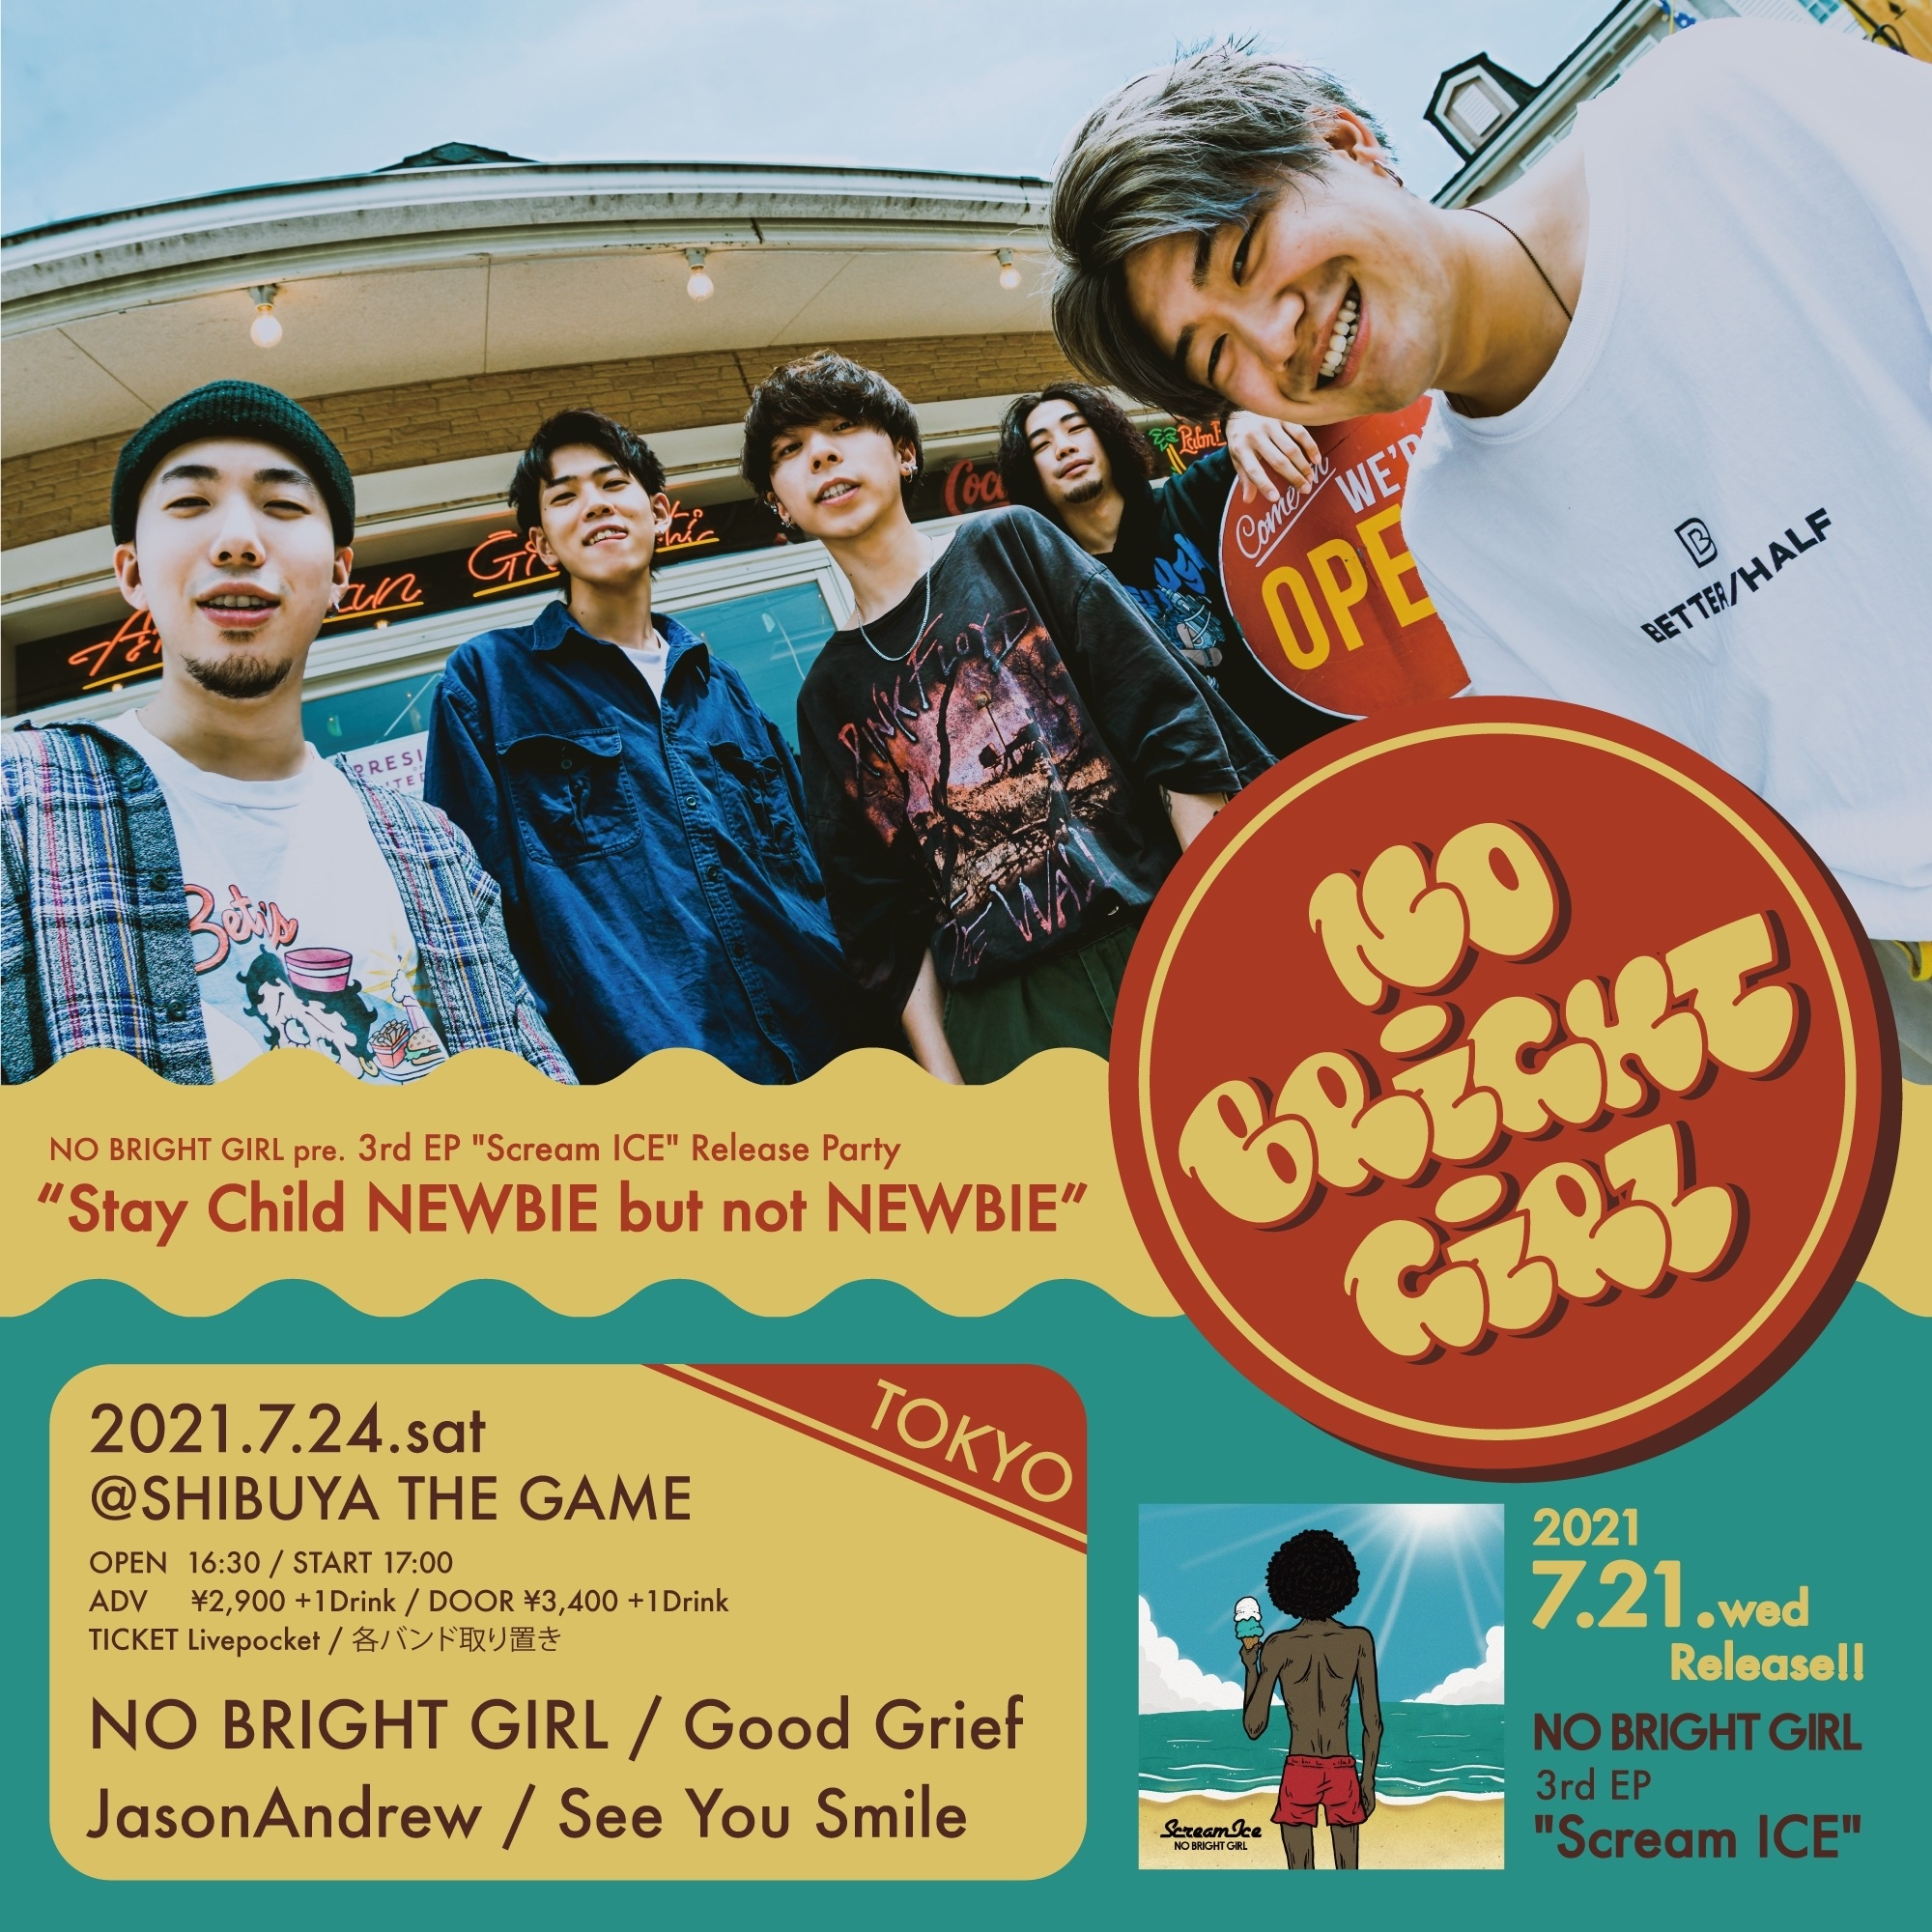 """NO BRIGHT GIRL pre """"Stay Child NEWBIE but not NEWBIE 3rd EP """"Scream ICE"""" Release Party"""""""